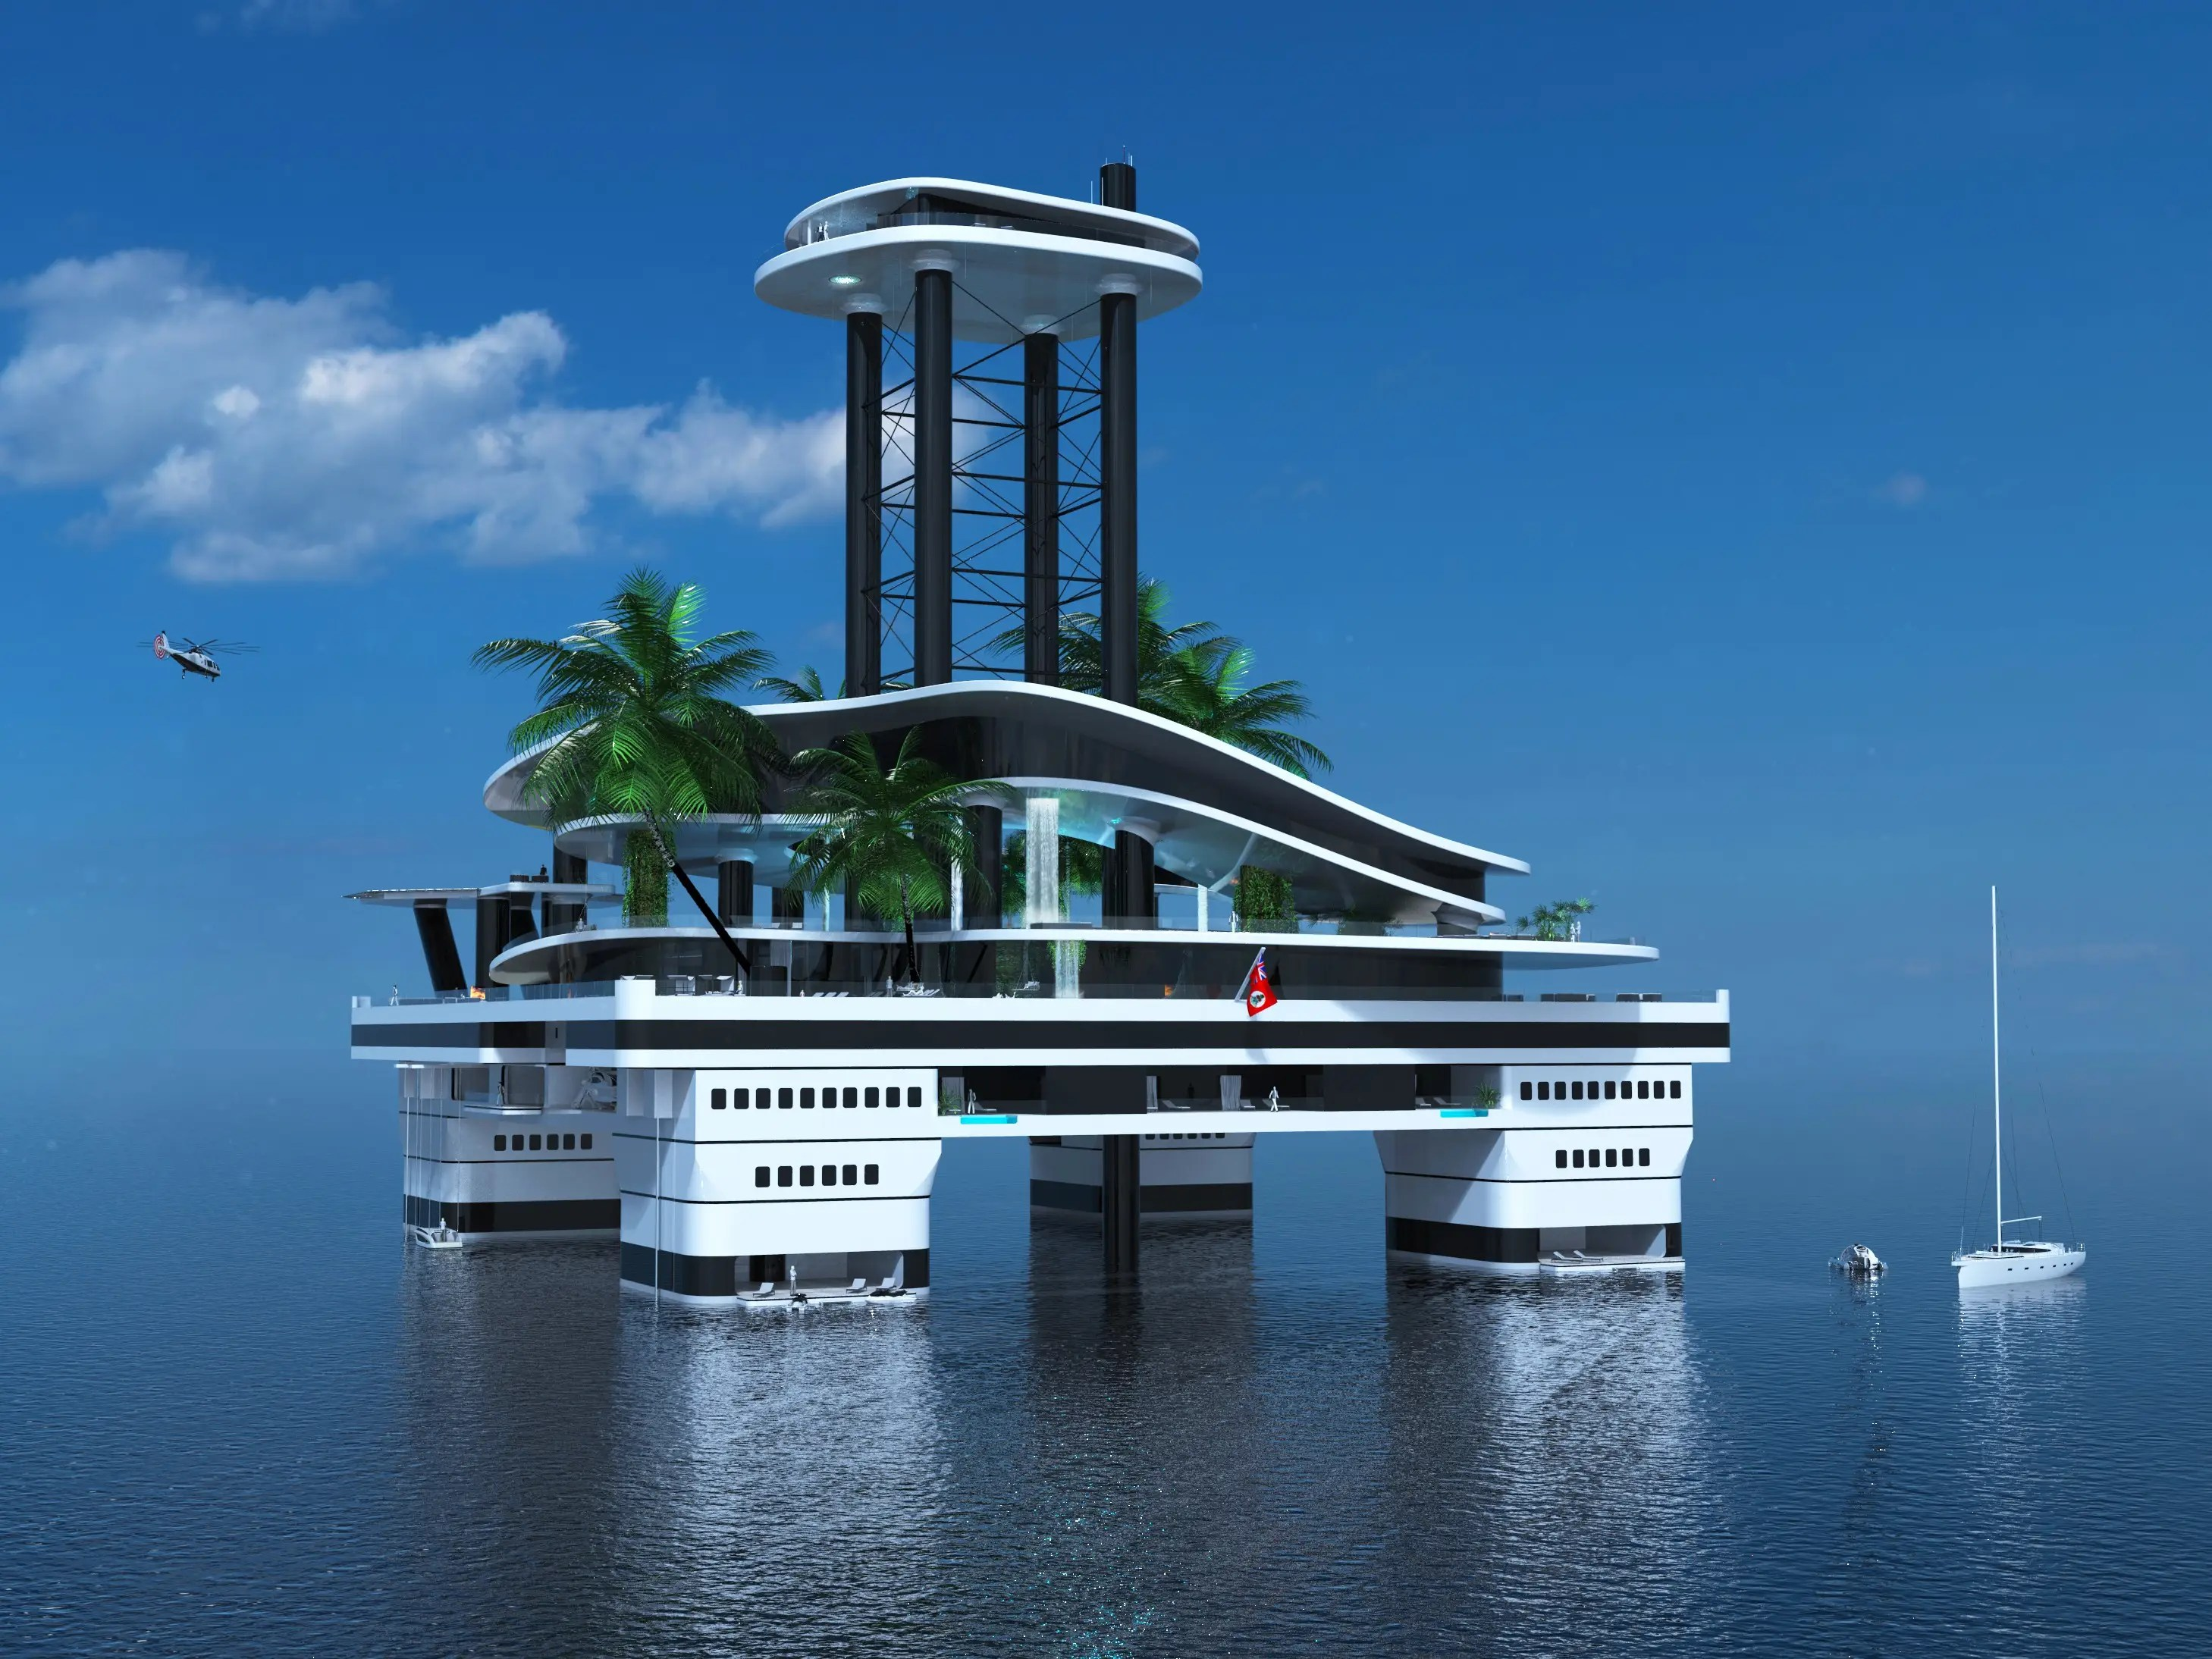 Designed with infinity pools and and private balconies, the VIP and guest deck is under the beach deck.